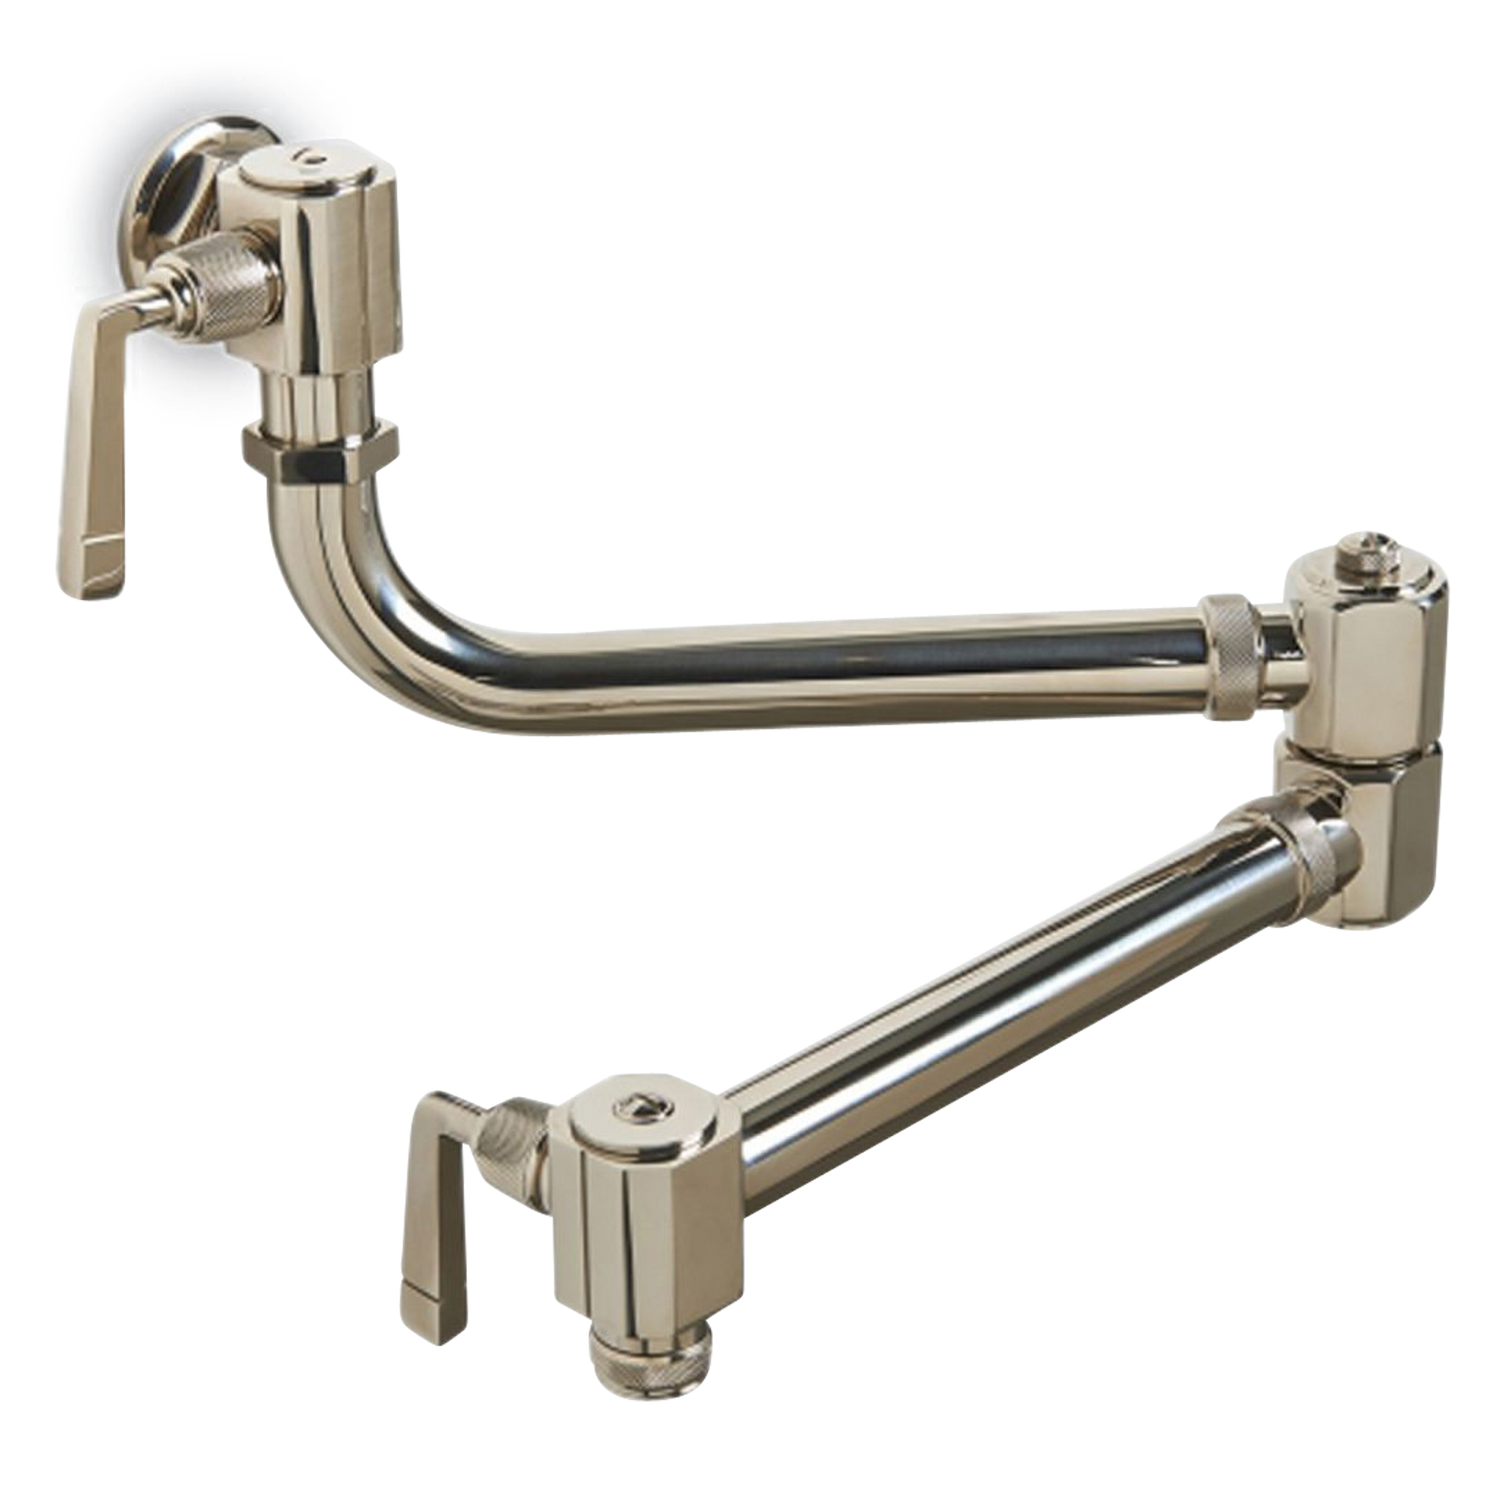 Rw Atlas Pot Filler